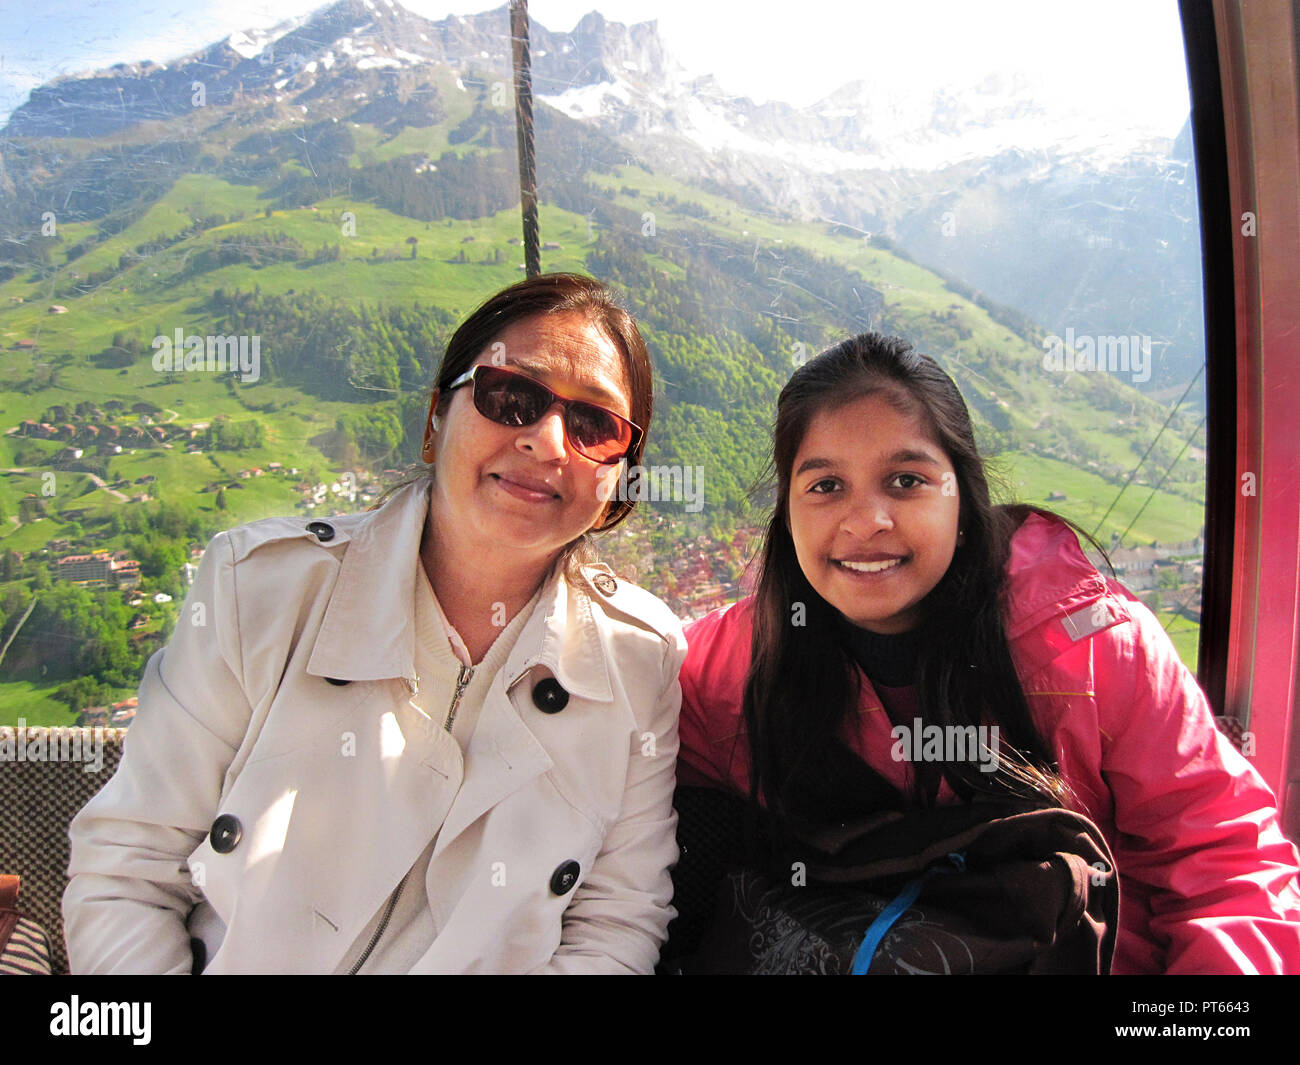 MOTHER AND DAUGHTER IN CABLE CAR TO MOUNT TITLIS, SWITZERLAND Stock Photo